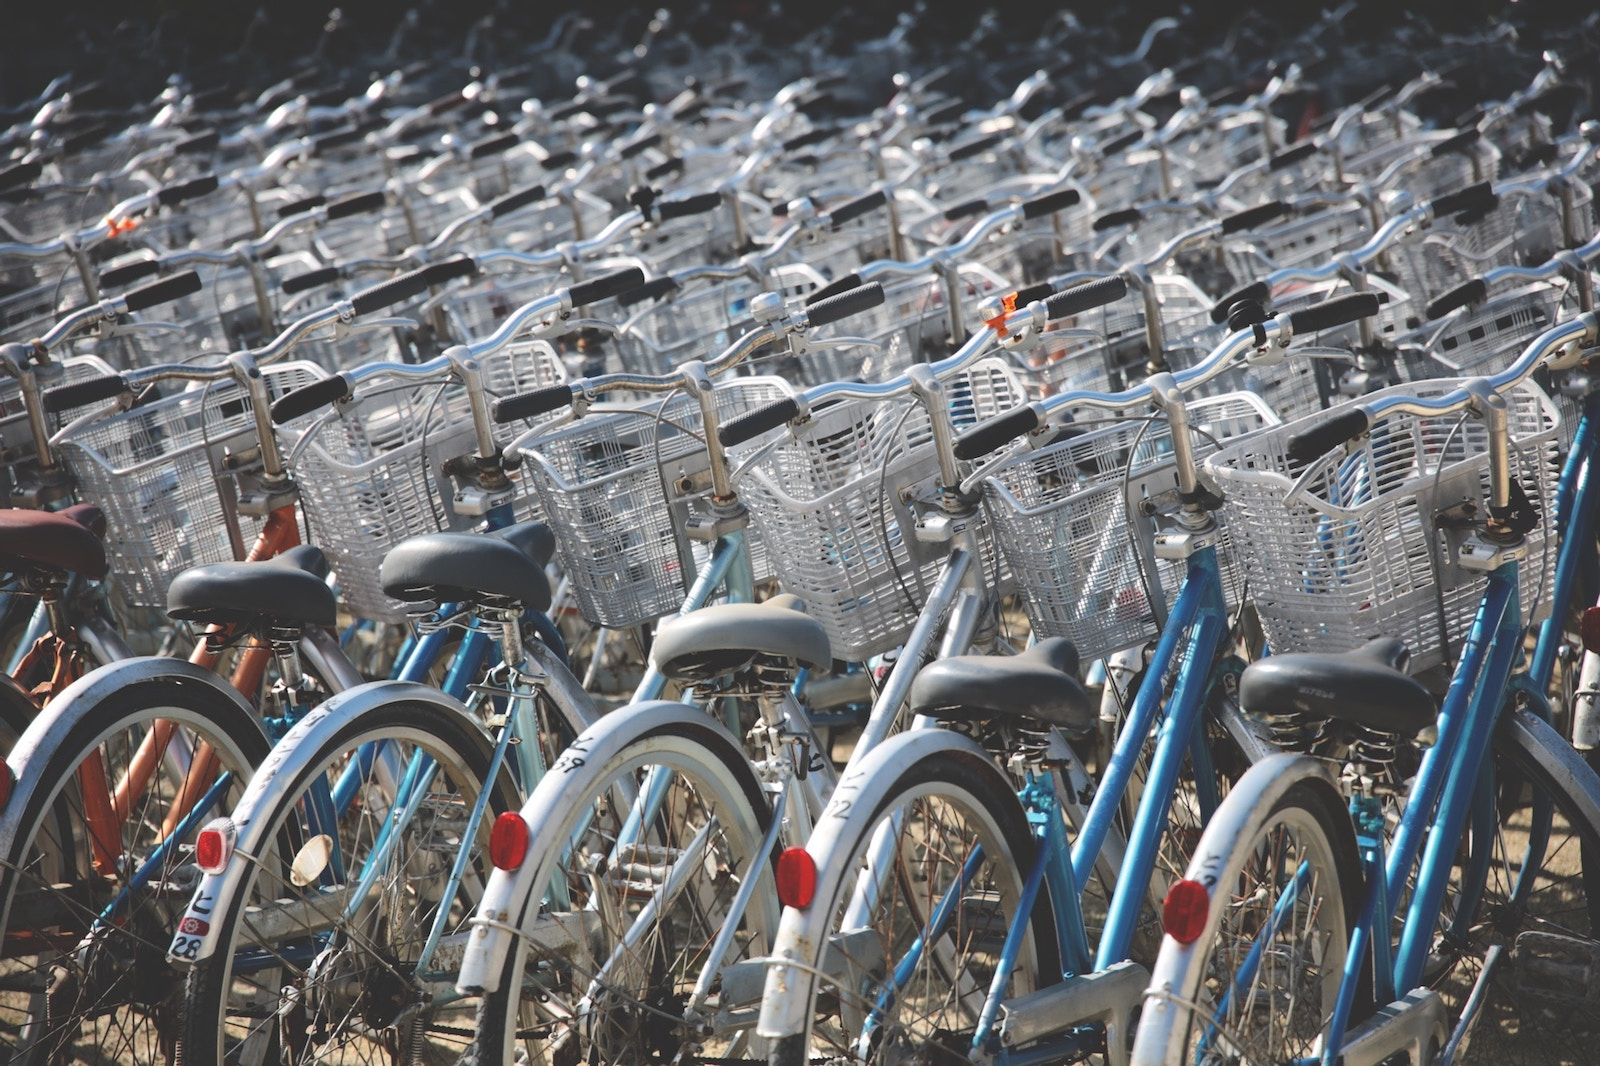 The Red Cross will bring 500 bicycles from China for volunteers to deliver medication to rural and mountainous areas (Photo: Berto Macario/ Unsplash)